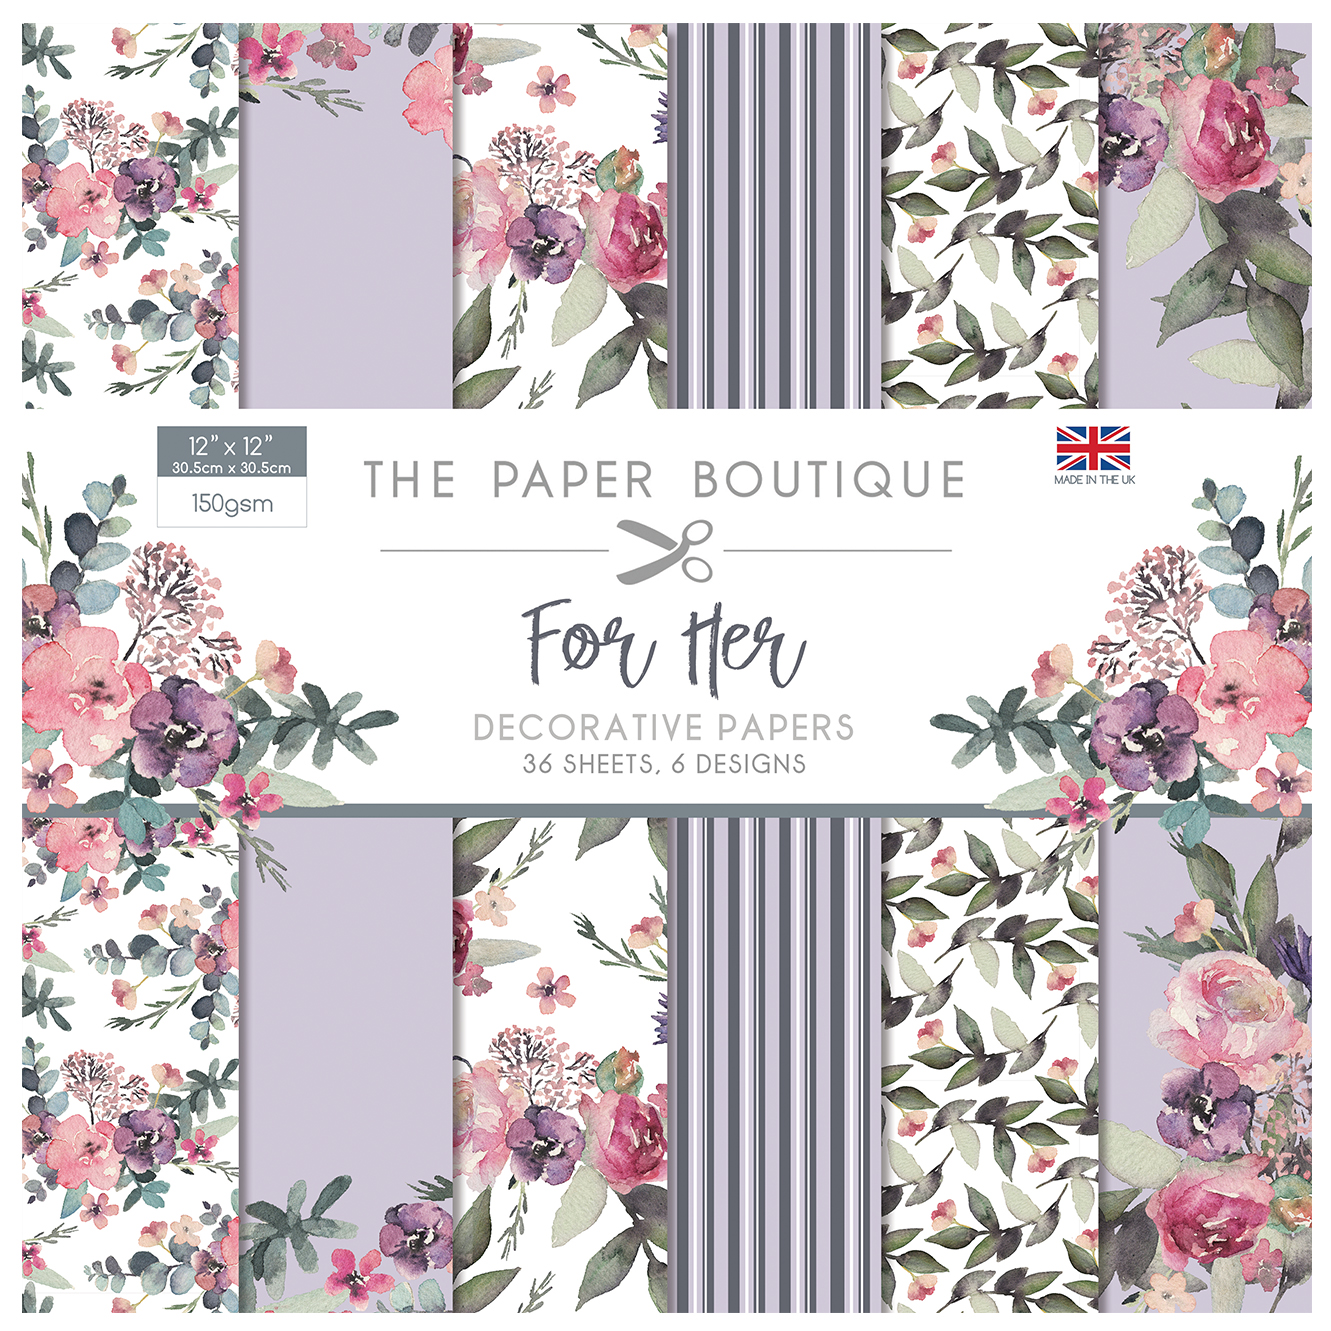 The Paper Boutique For Her 12″ x 12″ Paper Pad